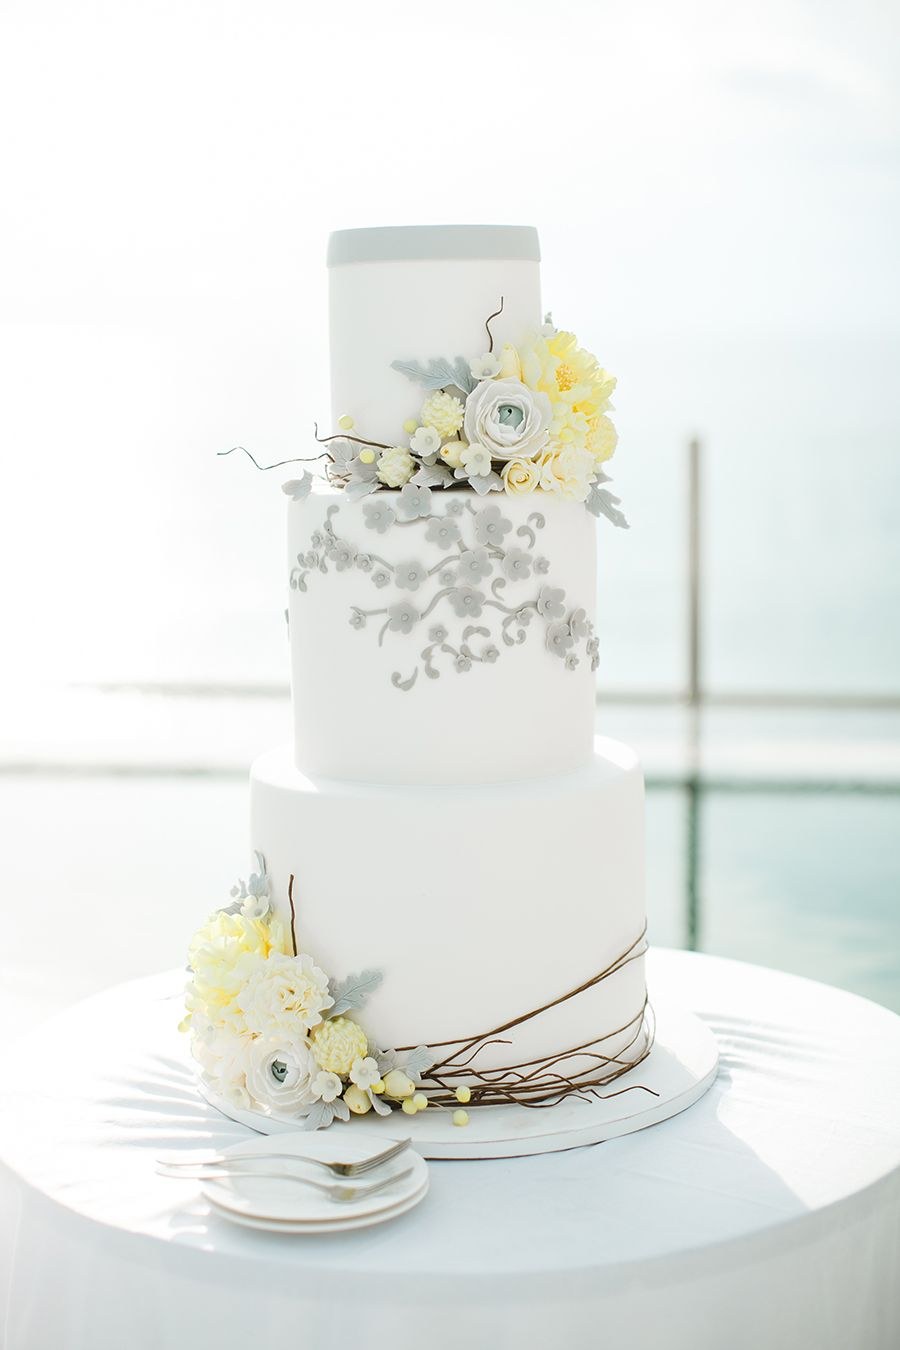 Grey White And Yellow Tiered Wedding Cake With Fls Facebook Instagram Theweddingscoop